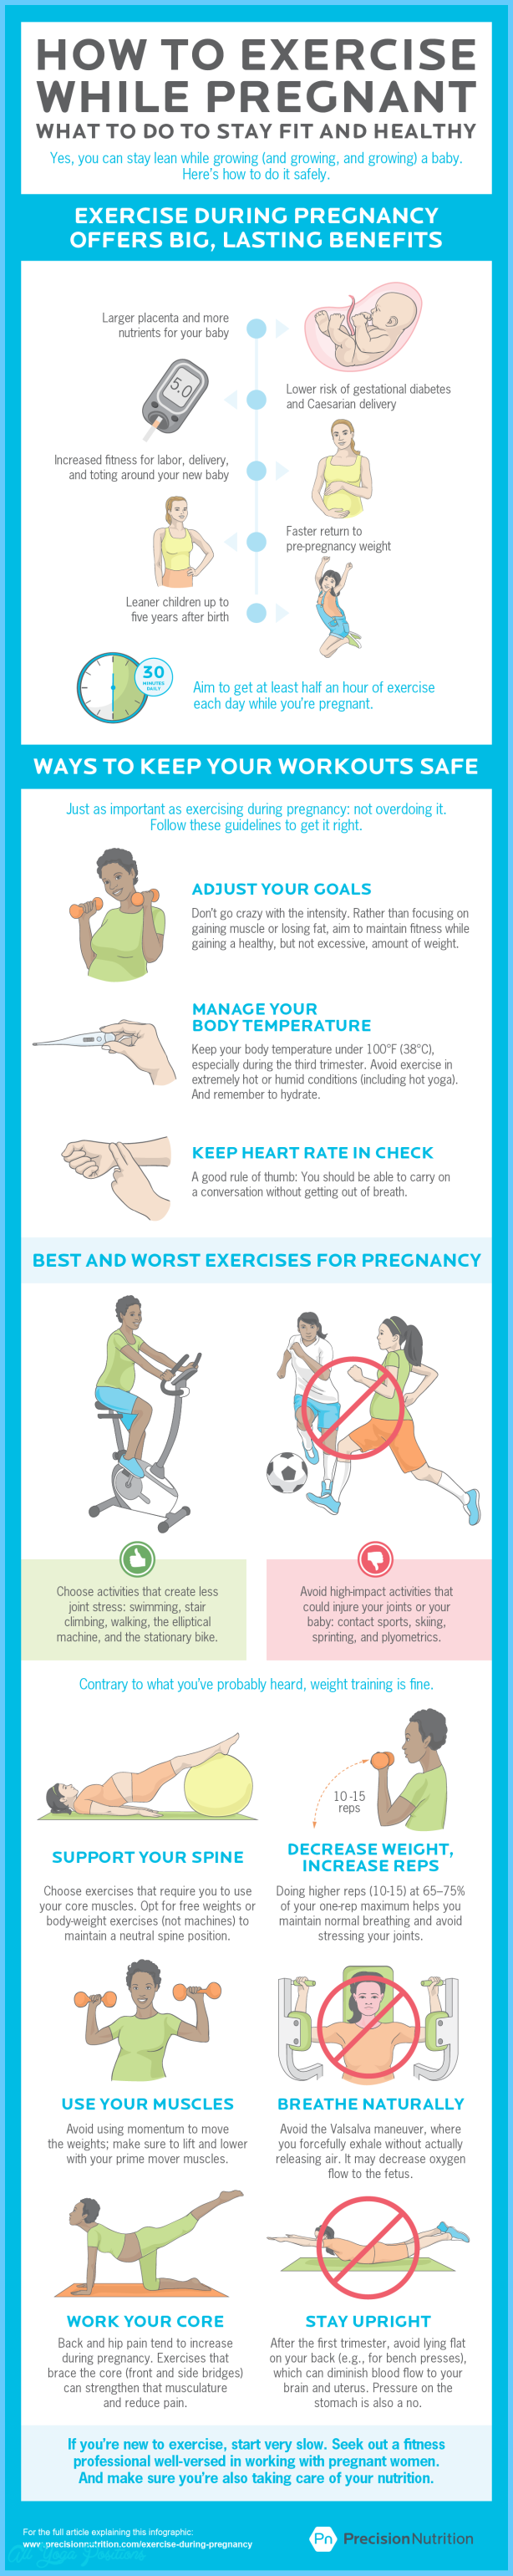 Importance Of Exercise During Pregnancy_50.jpg